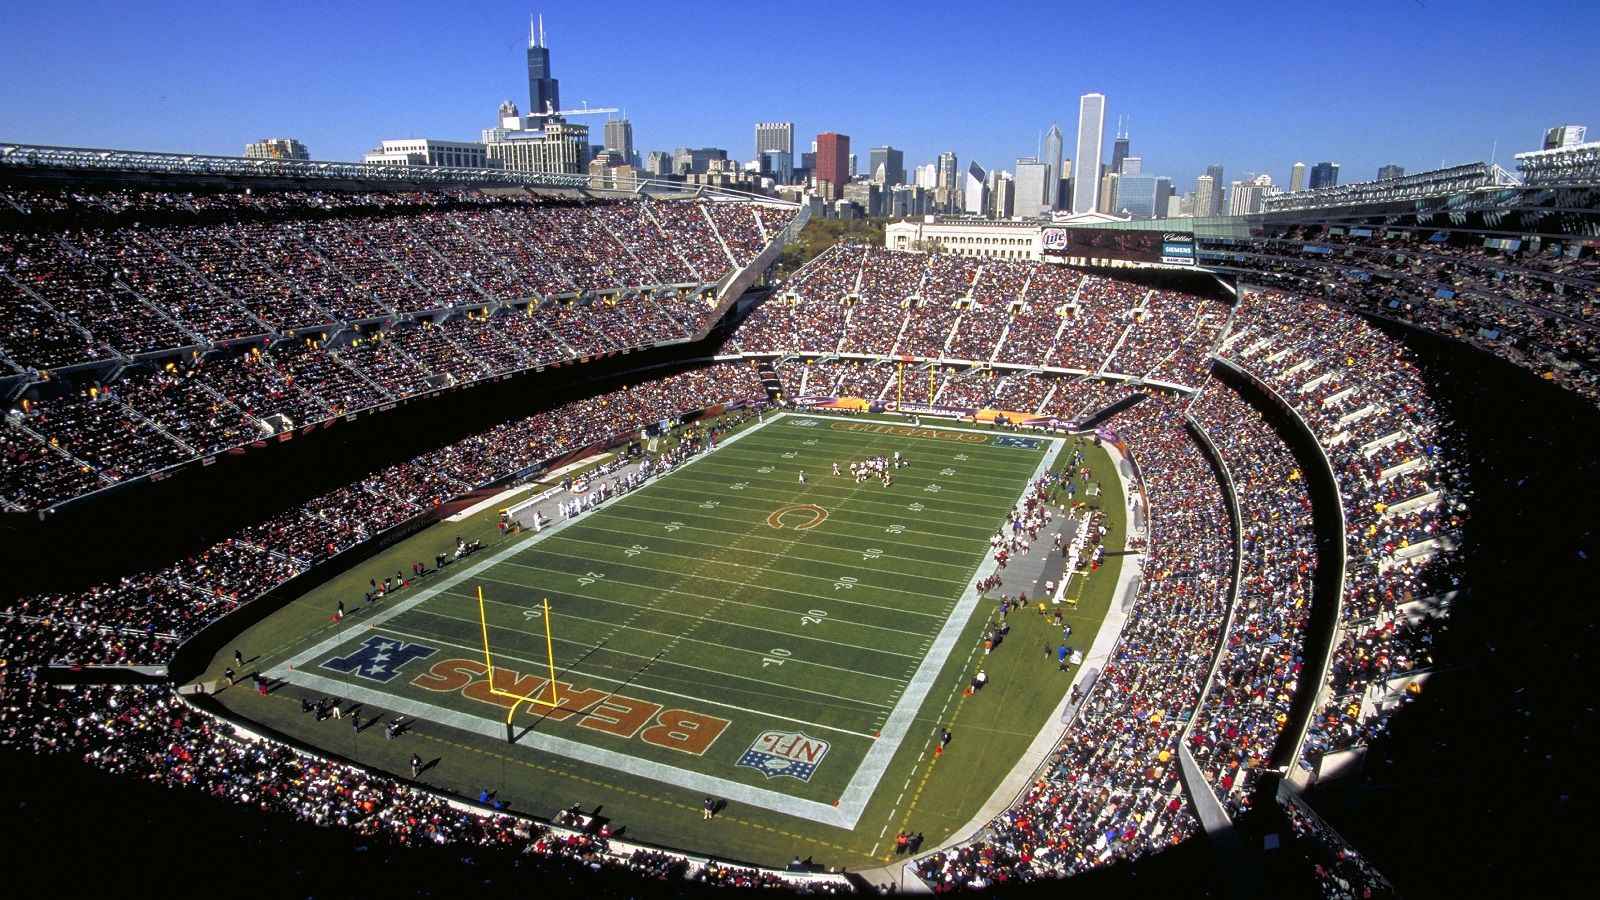 Hotel Rooms In Chicago Near Soldier Field